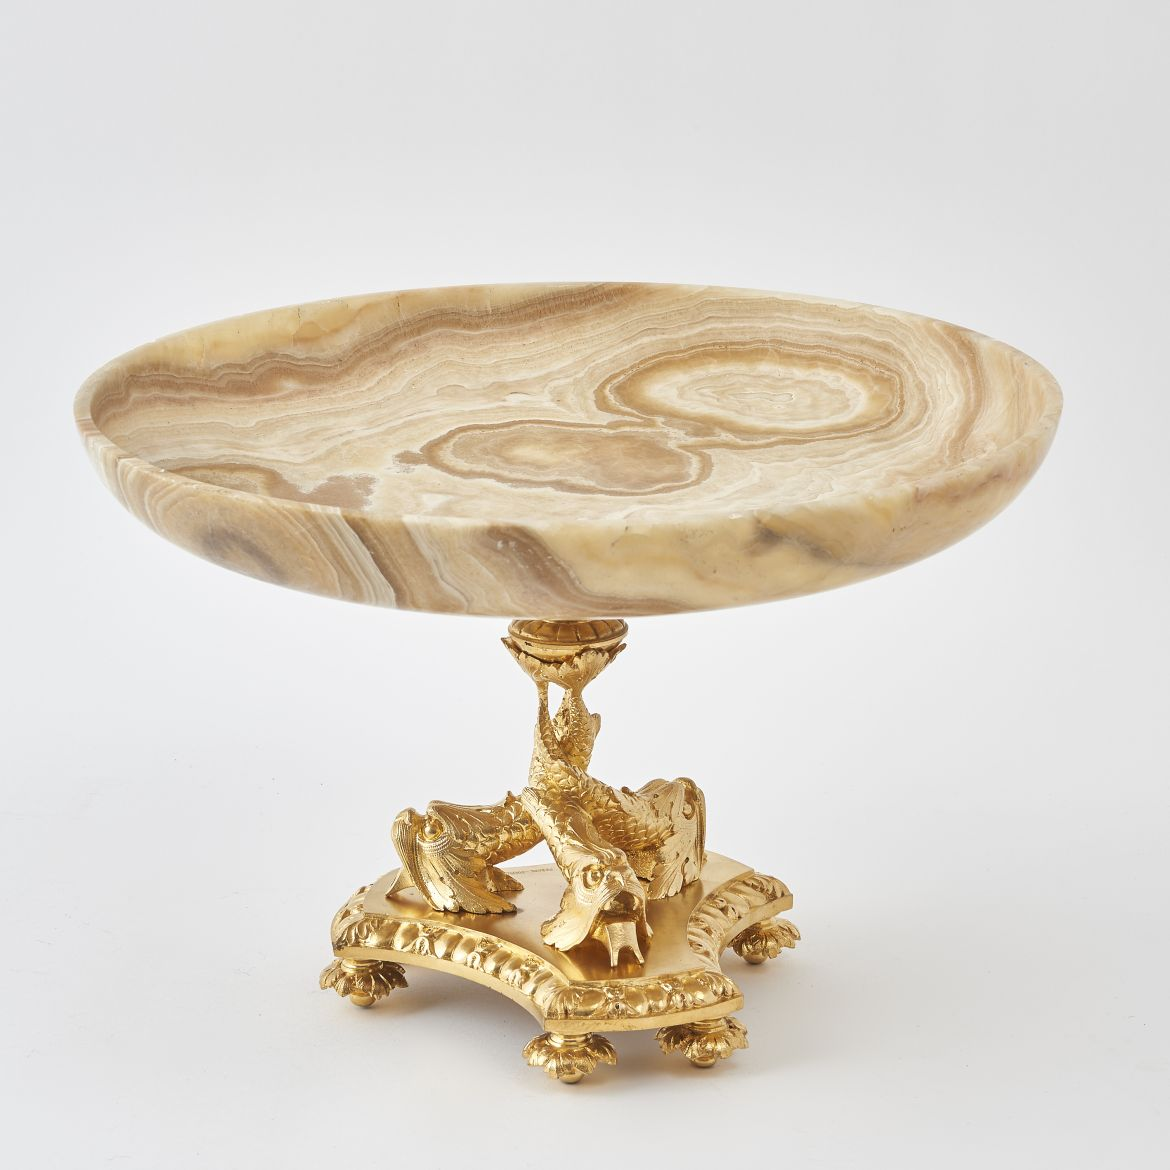 French Ormolu Mounted Onyx Tazza